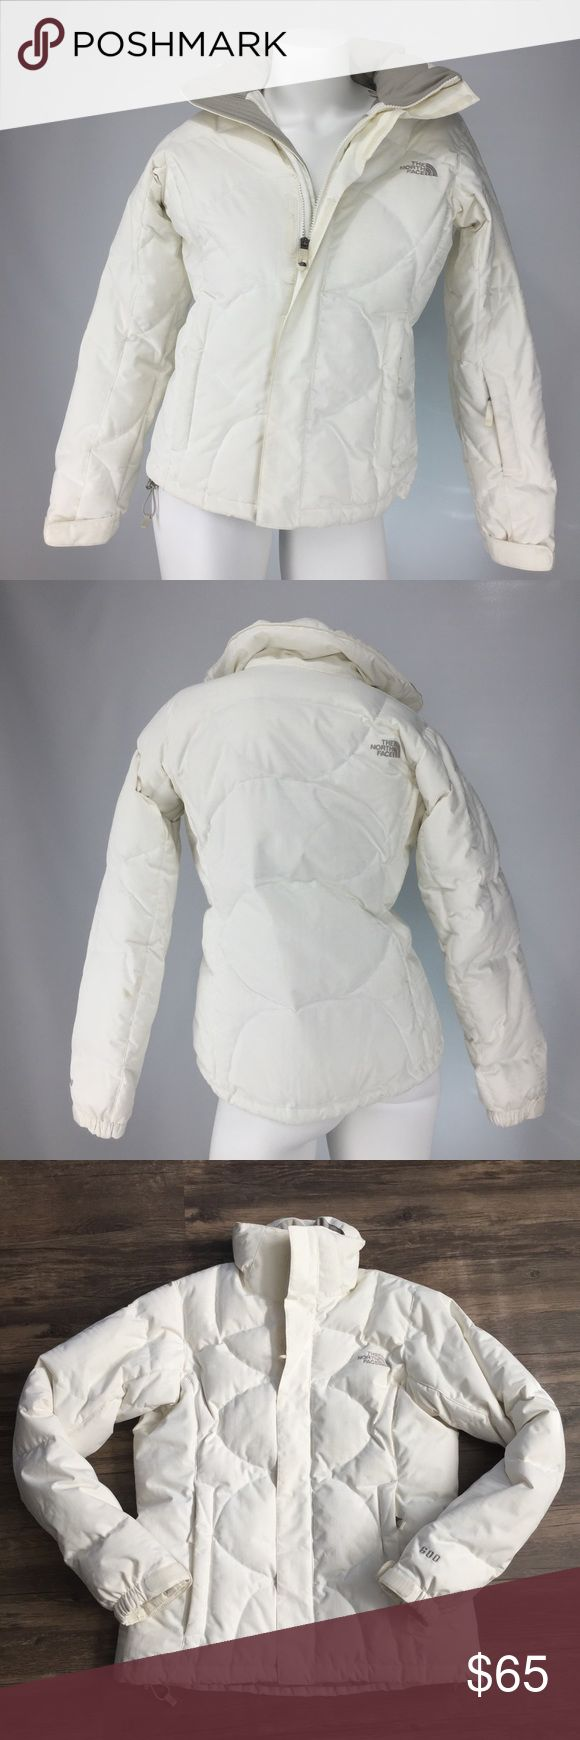 THE NORTH FACE 600 Series Goose Down Coat! THE NORTH FACE 600 Series Goose Down Coat! Beautiful white goose down coat featuring zip and velcro closure, exterior zip pockets on front and sleeve,  interior zip cell phone pocket, and drawstring waist band. THE NORTH FACE logo on front and back. Gorgeous coat in great condition! The North Face Jackets & Coats Puffers